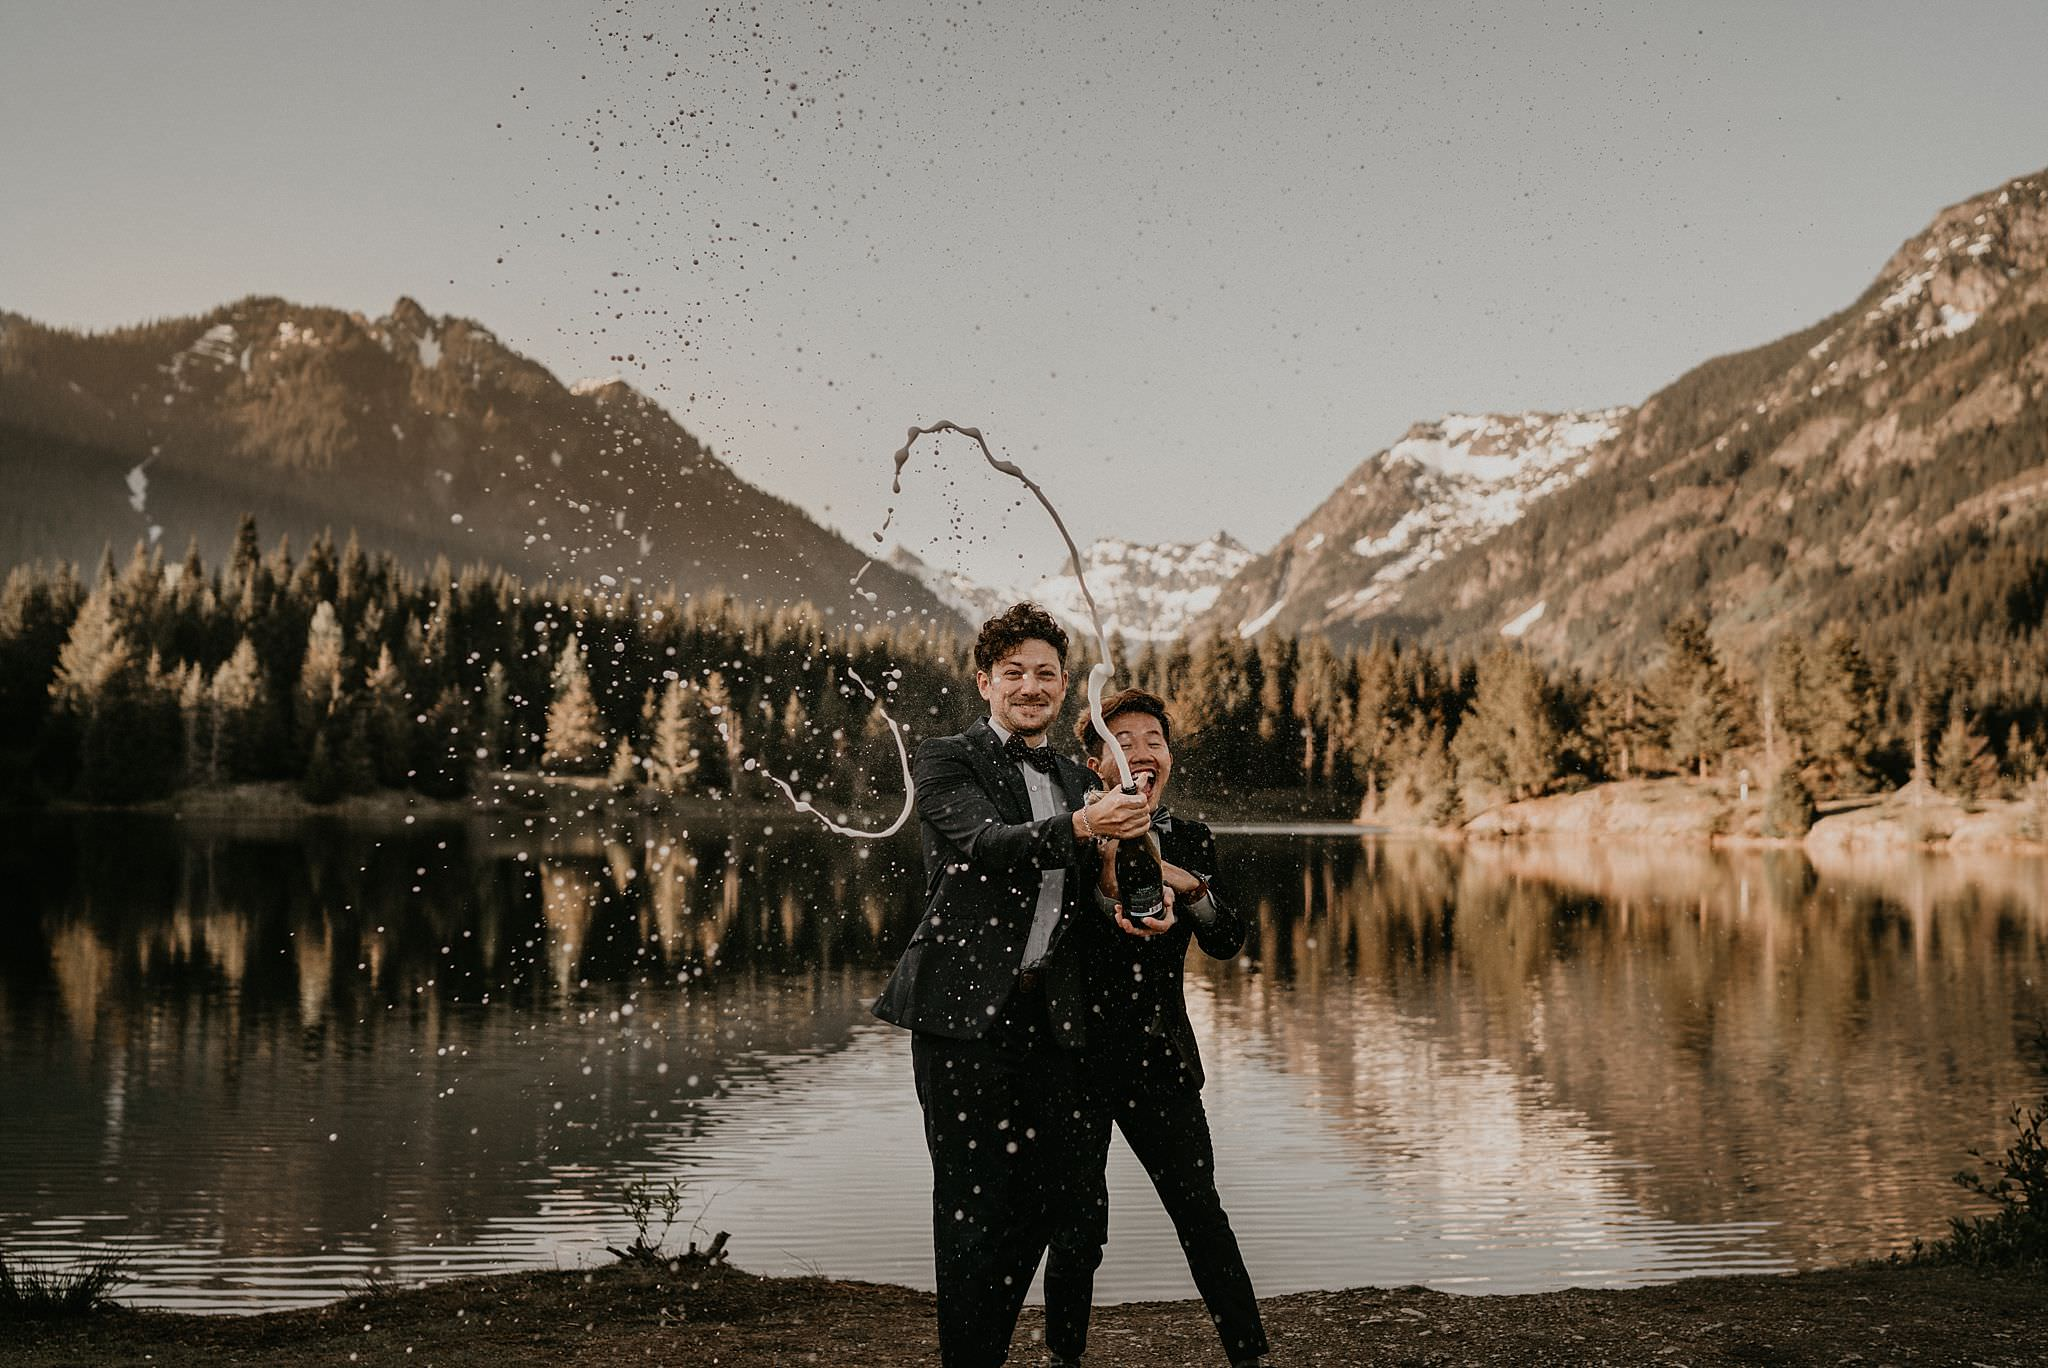 PNW adventure elopement for same sex couples